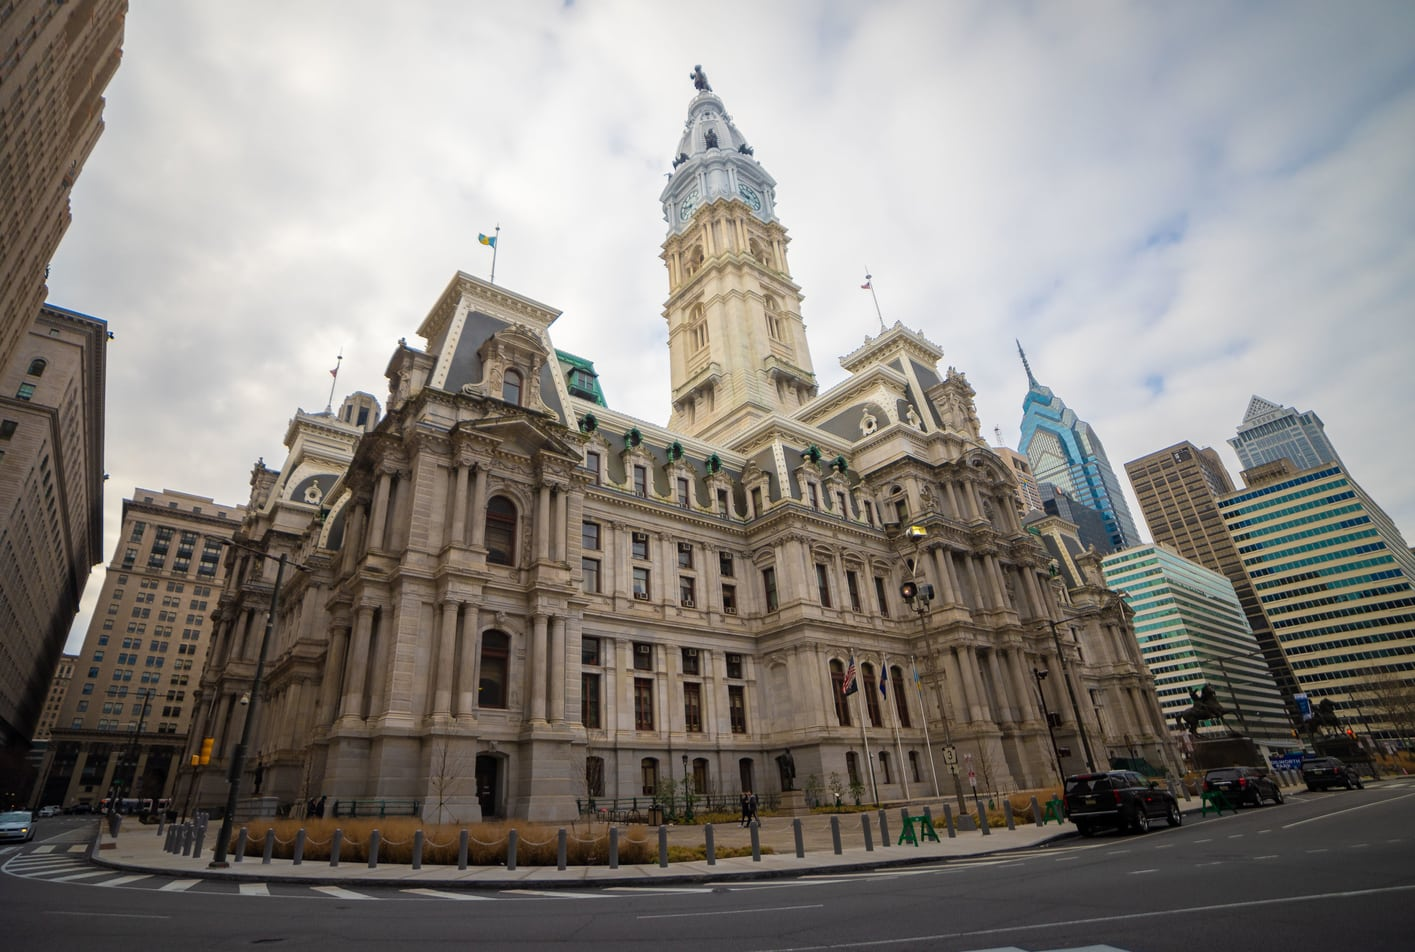 Downtown, hotels in center city Philadelphia